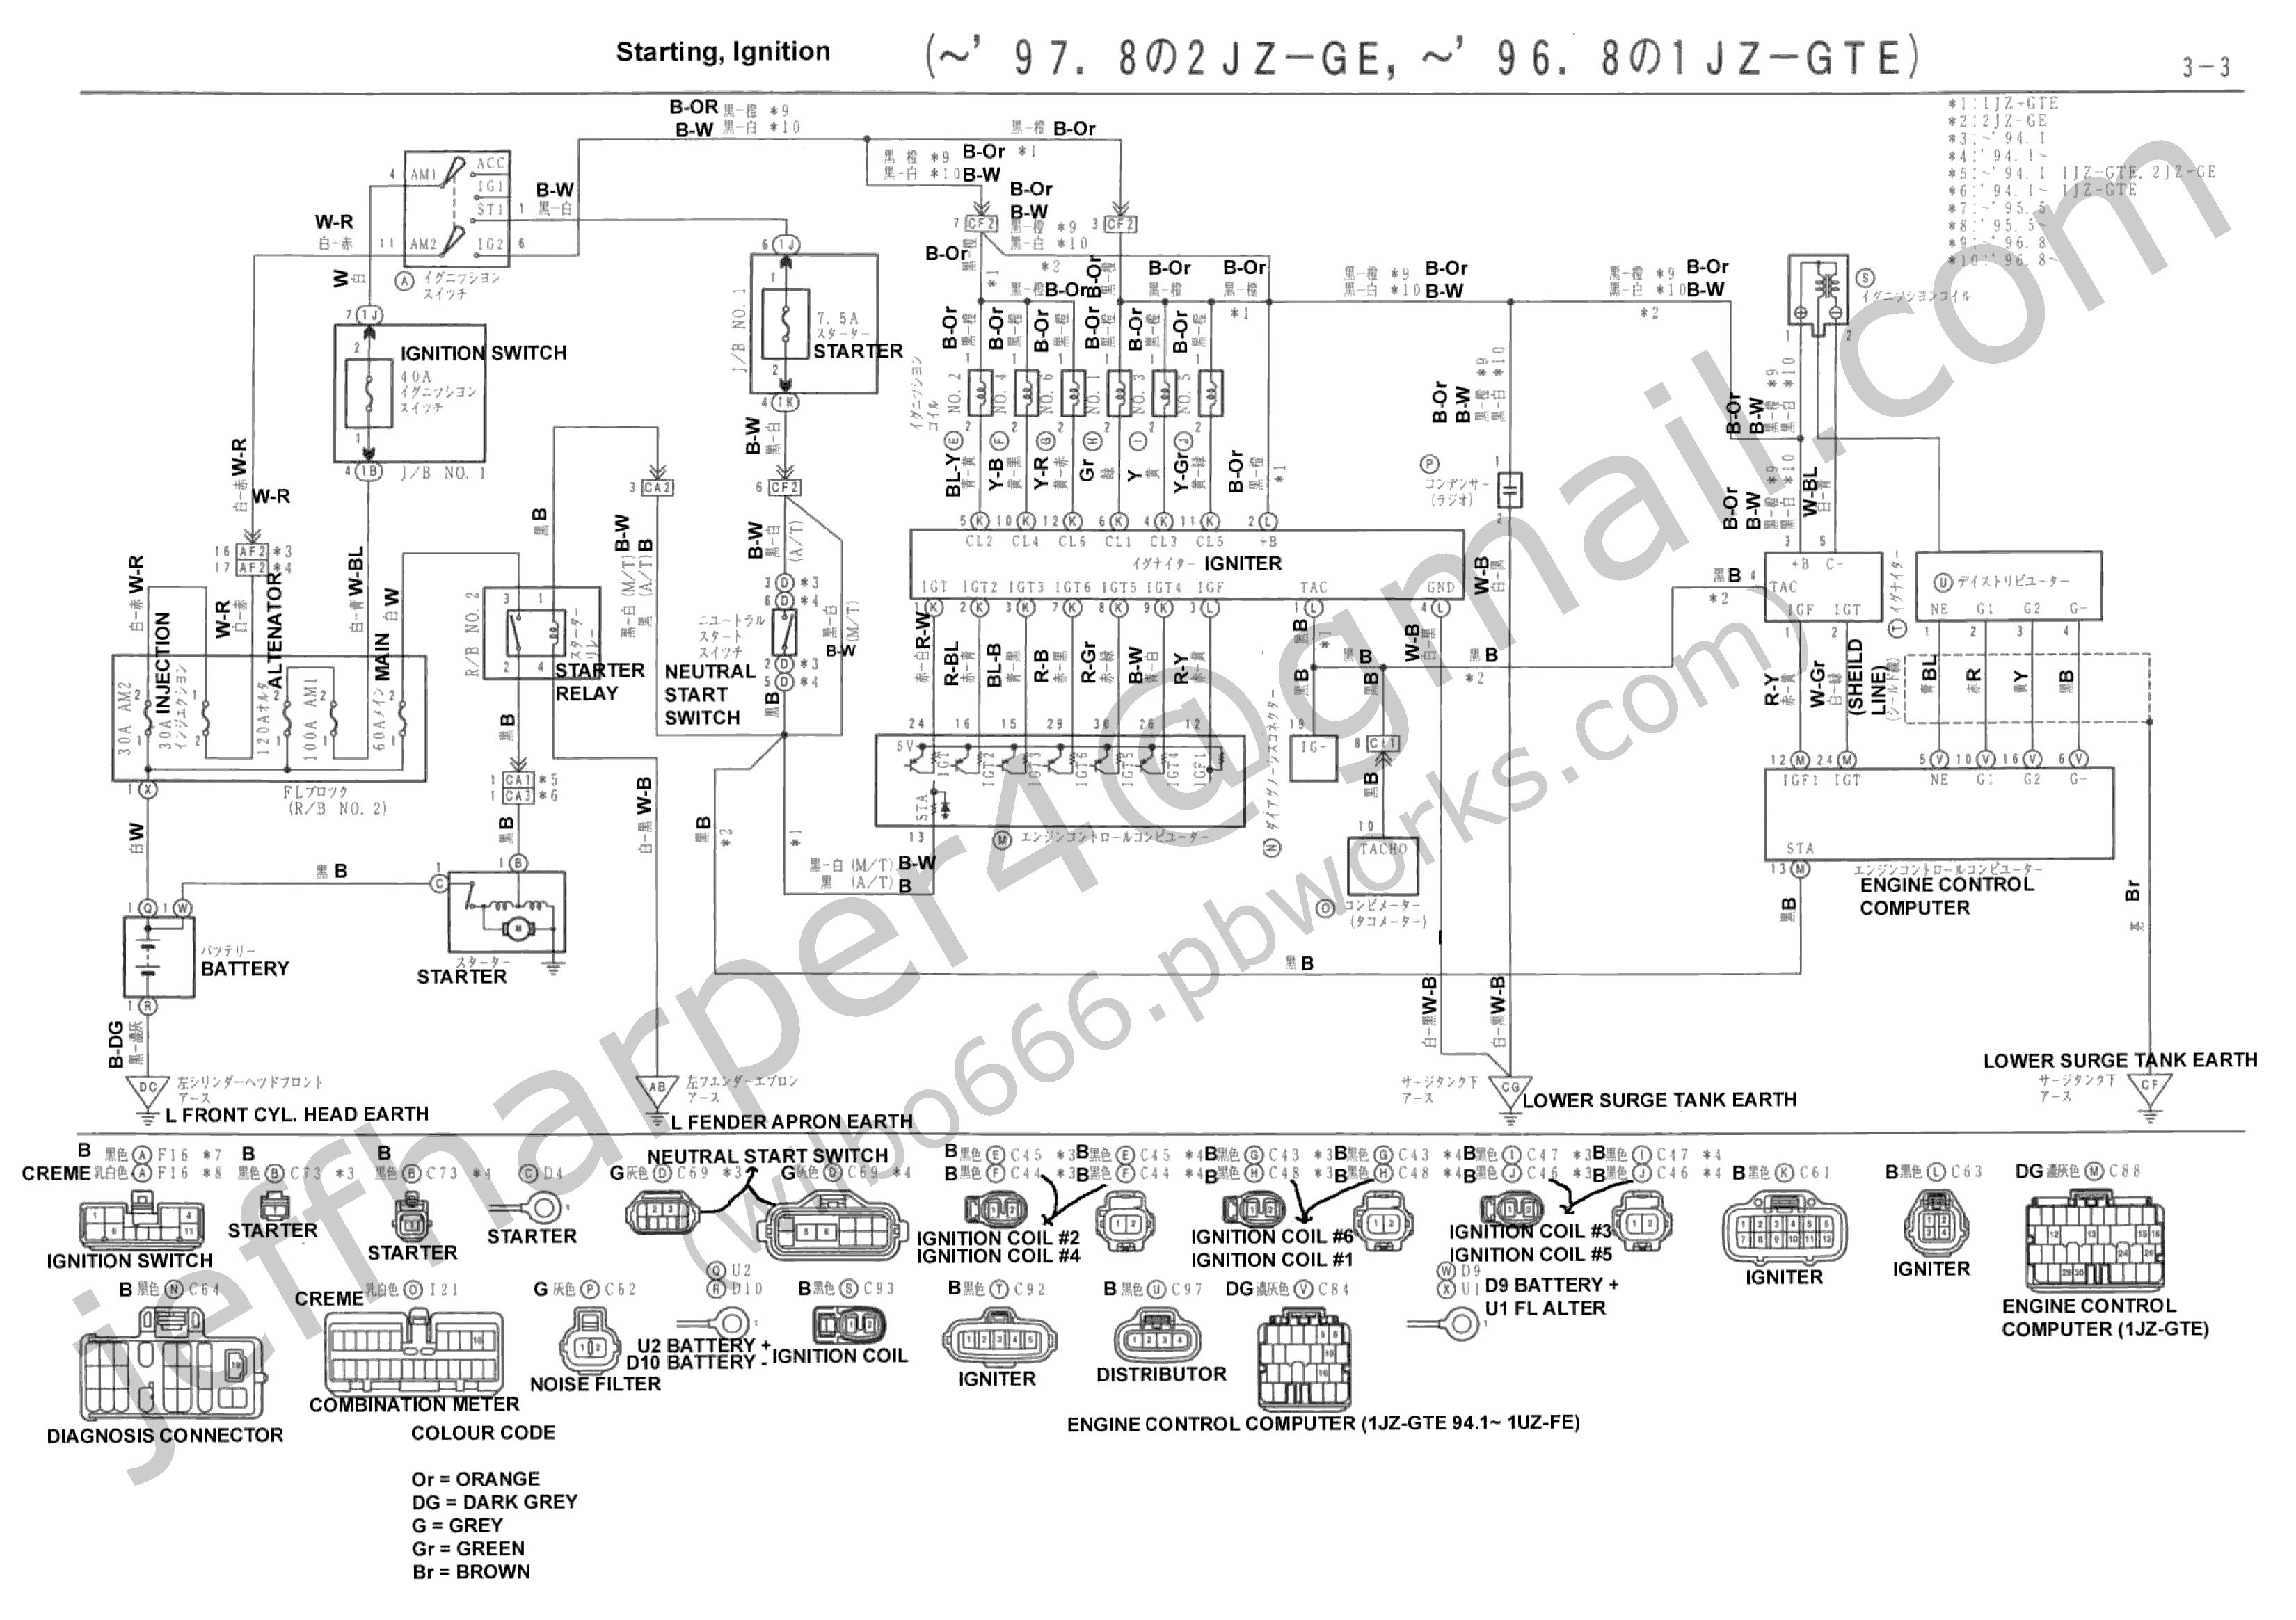 1uzfe wiring diagram